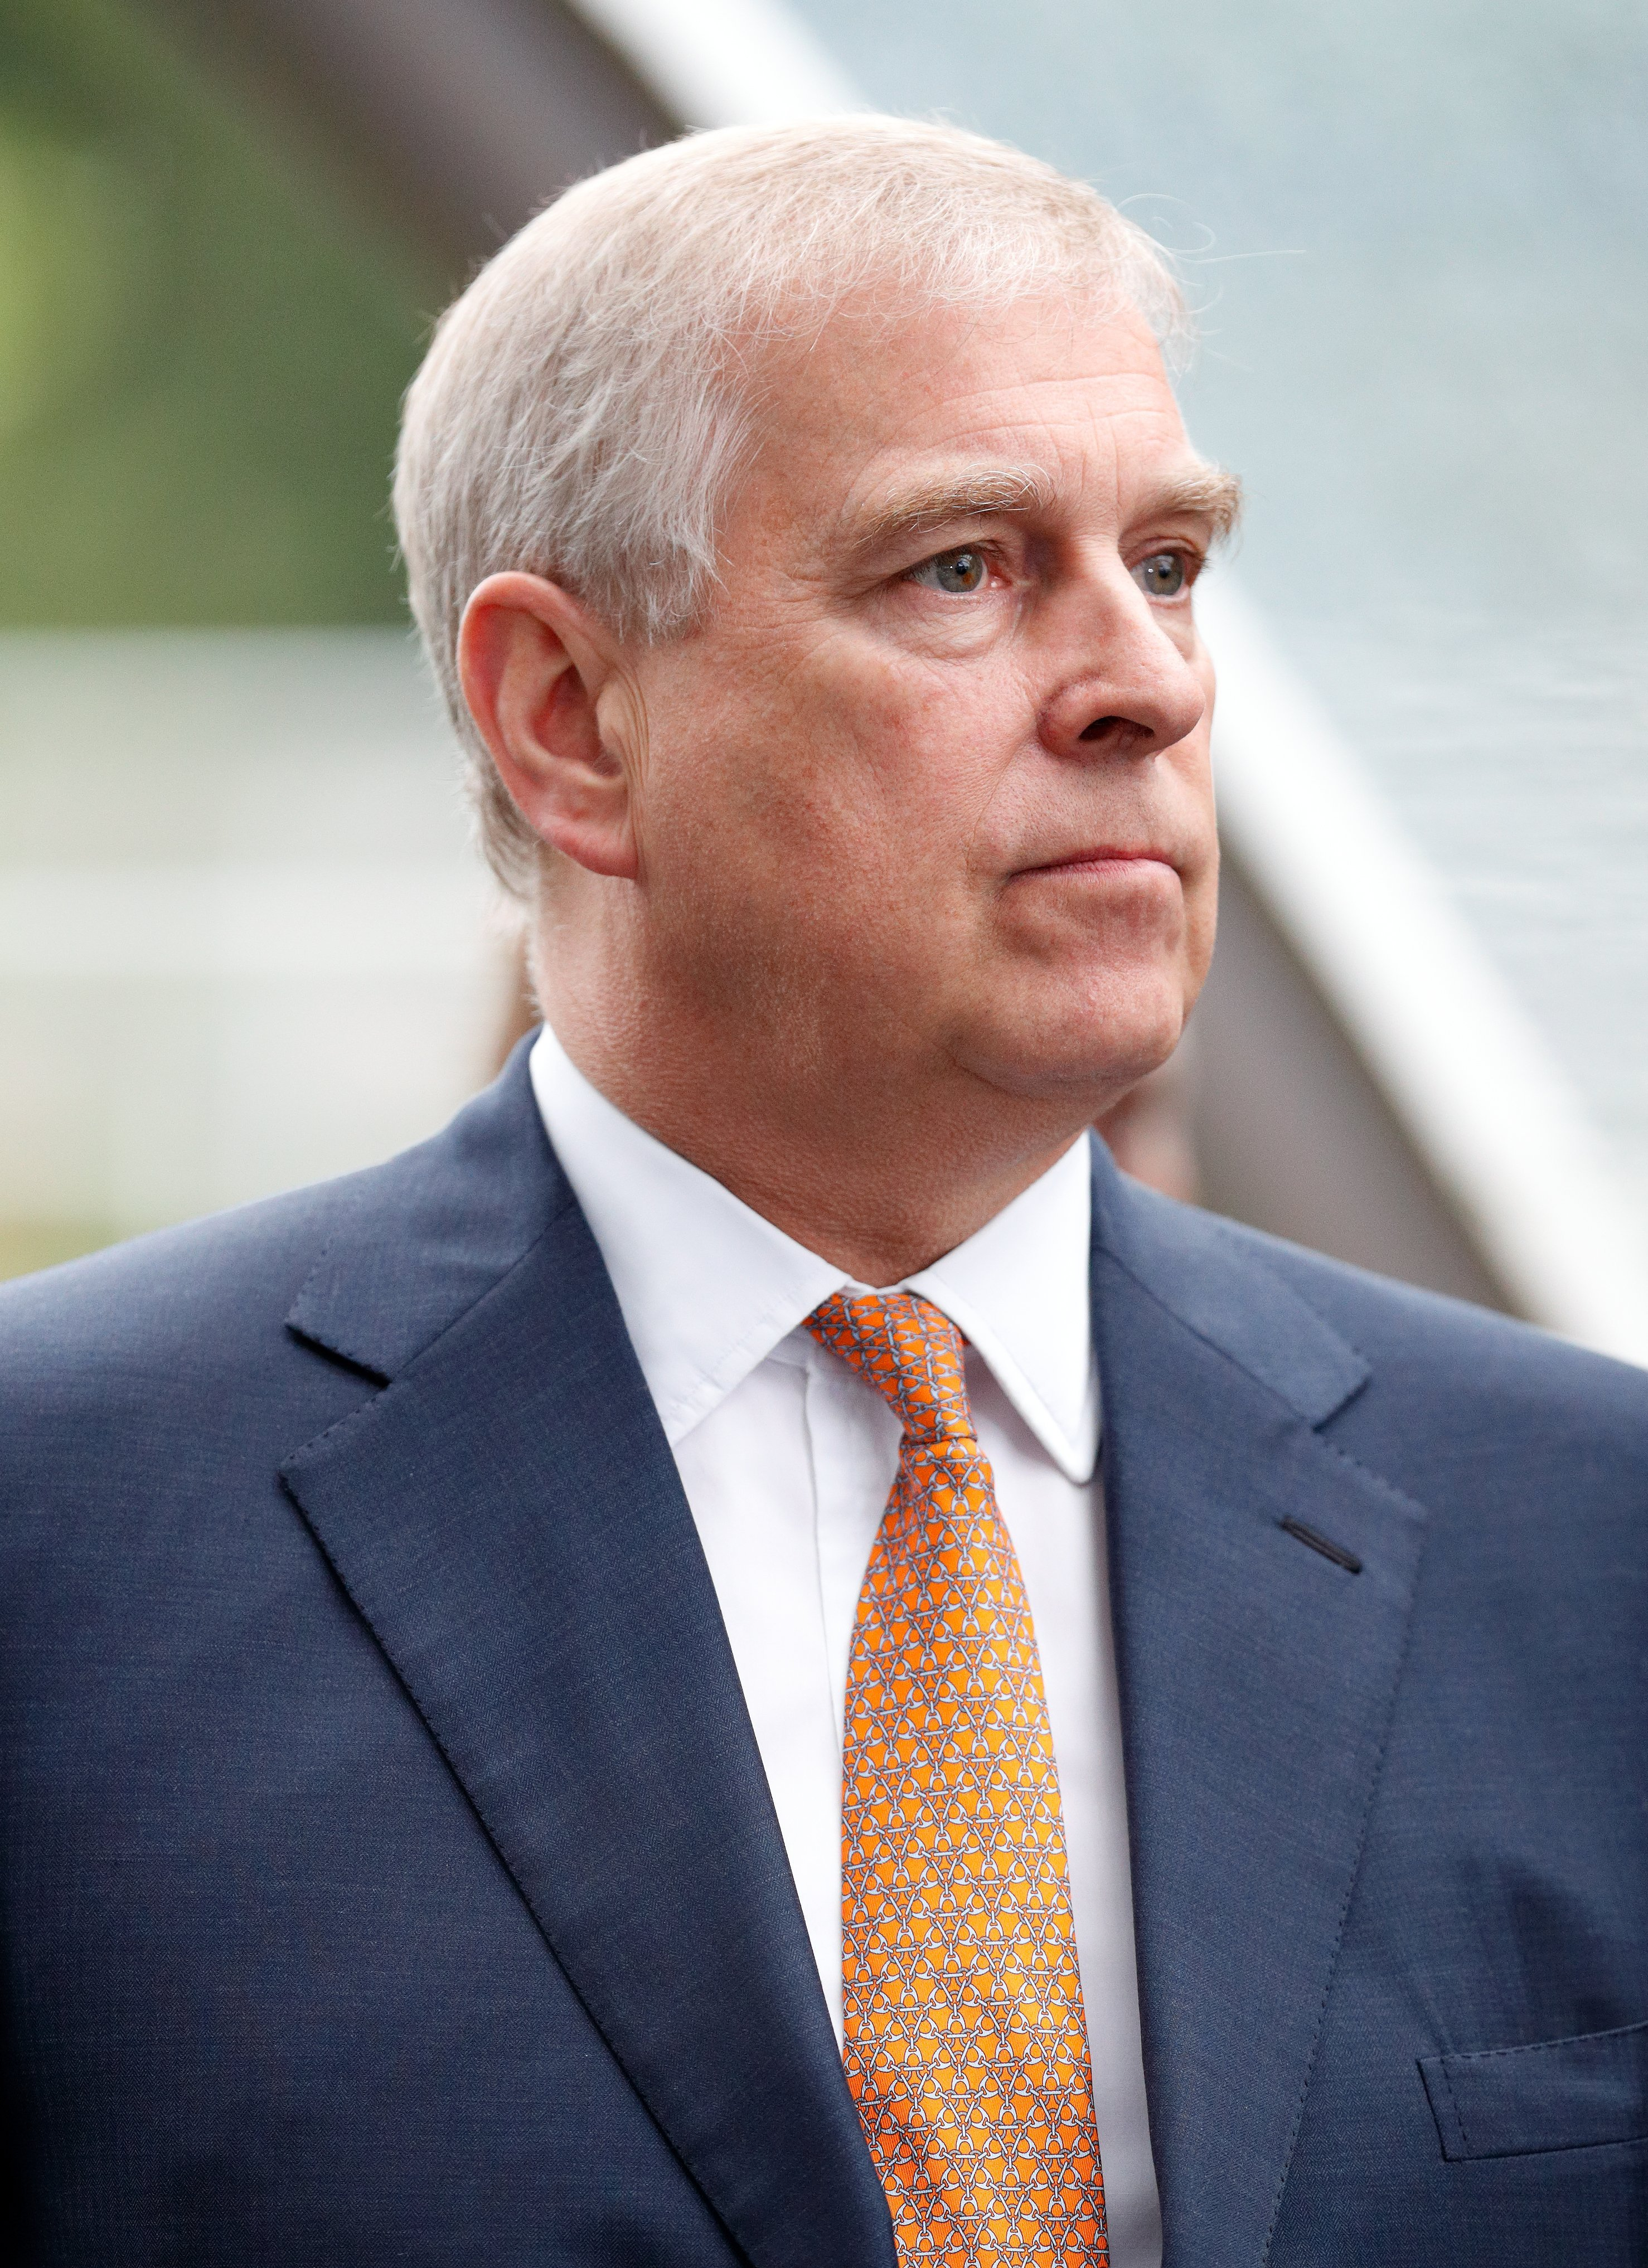 Prince Andrew, the Duke of York | Photo: Getty Images